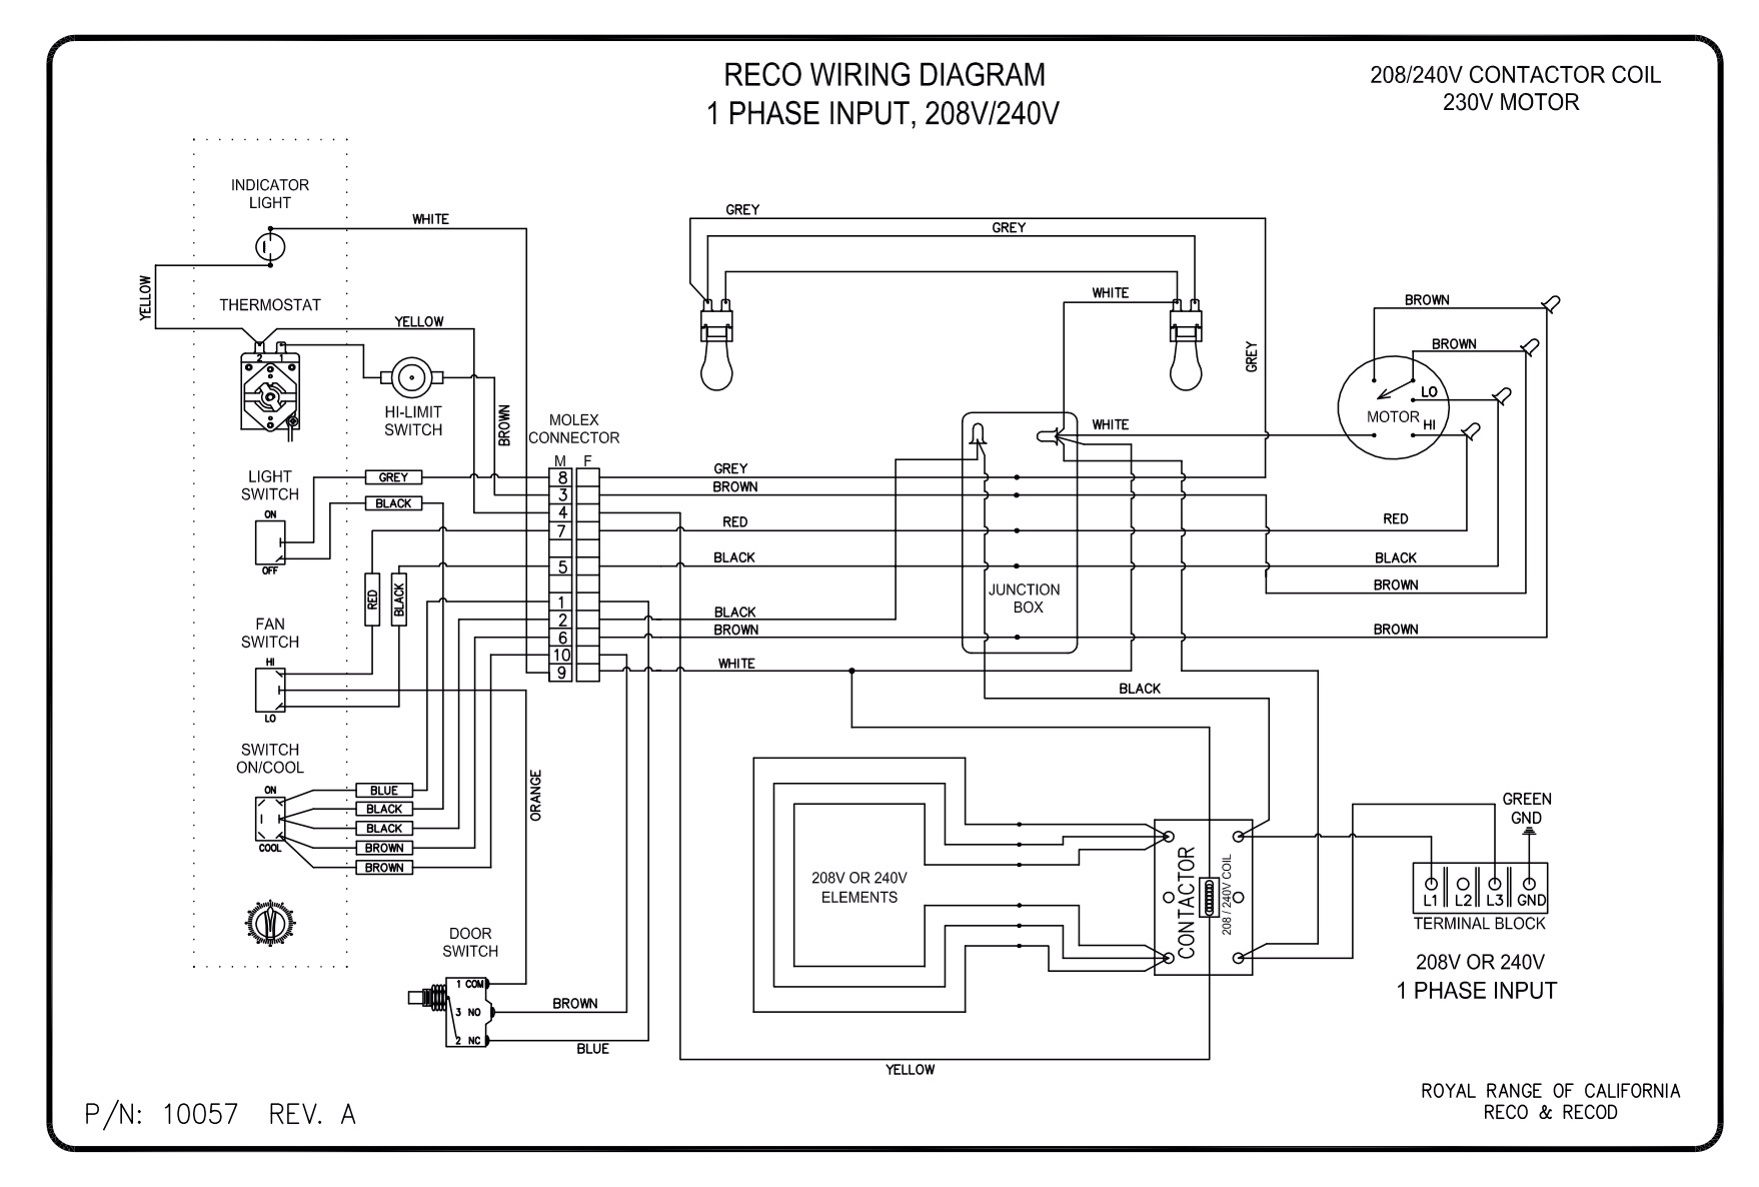 Oven Schematic Wiring | Repair Manual on